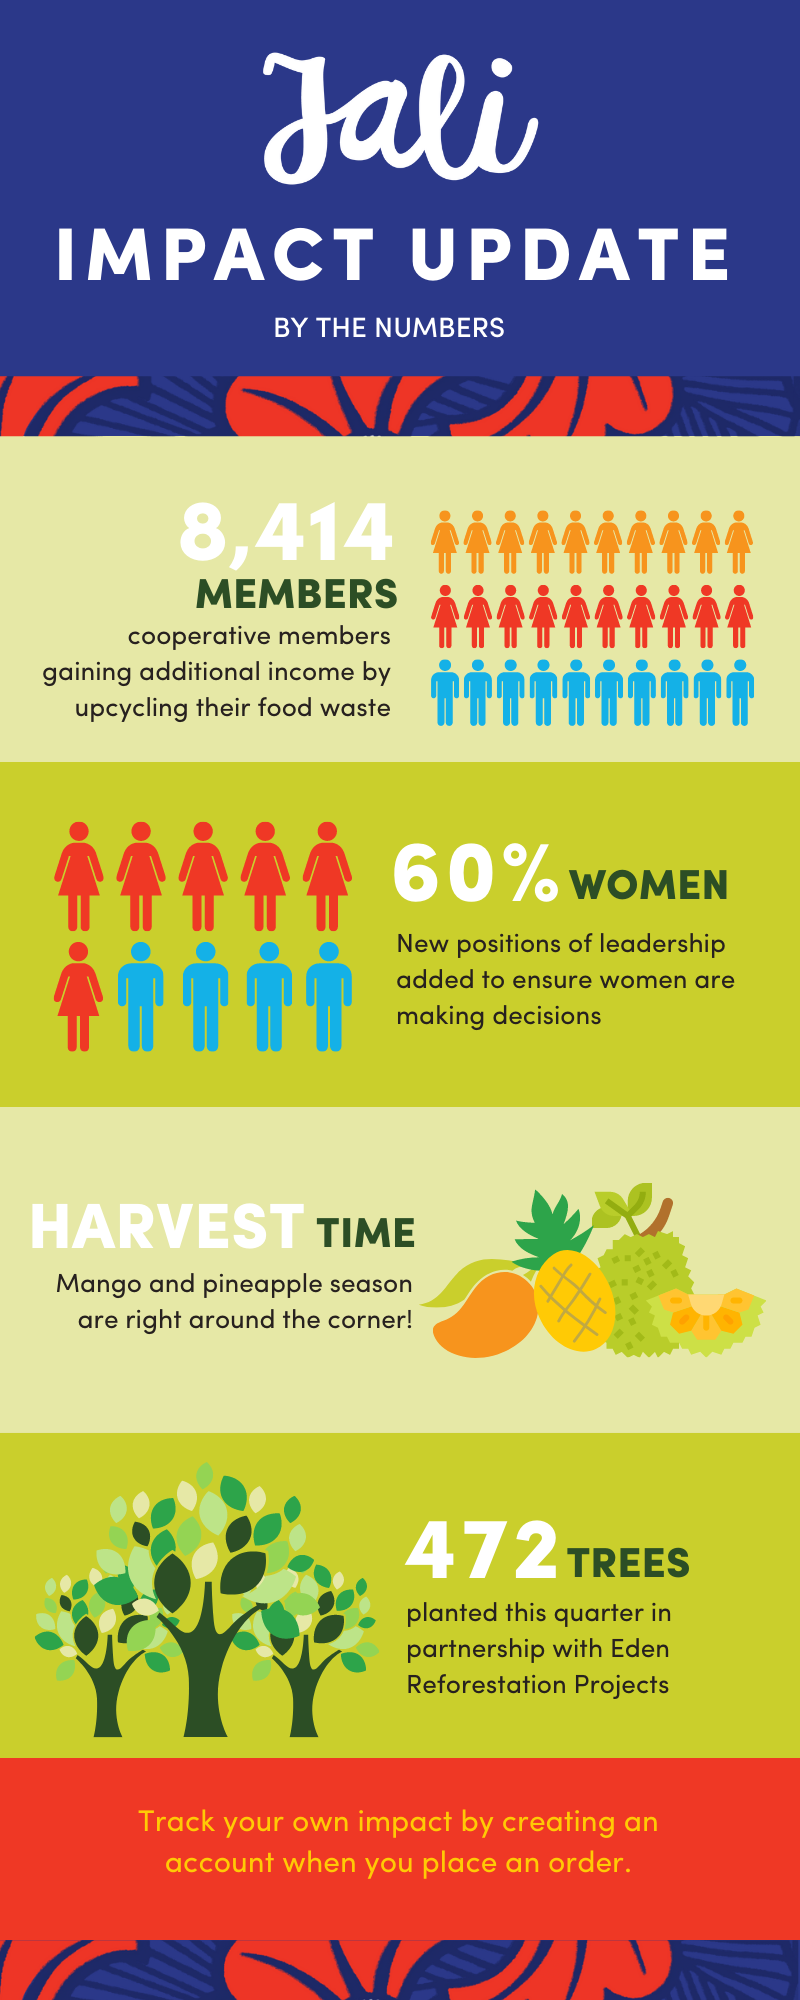 Jali Fruit Co. impact update by the numbers